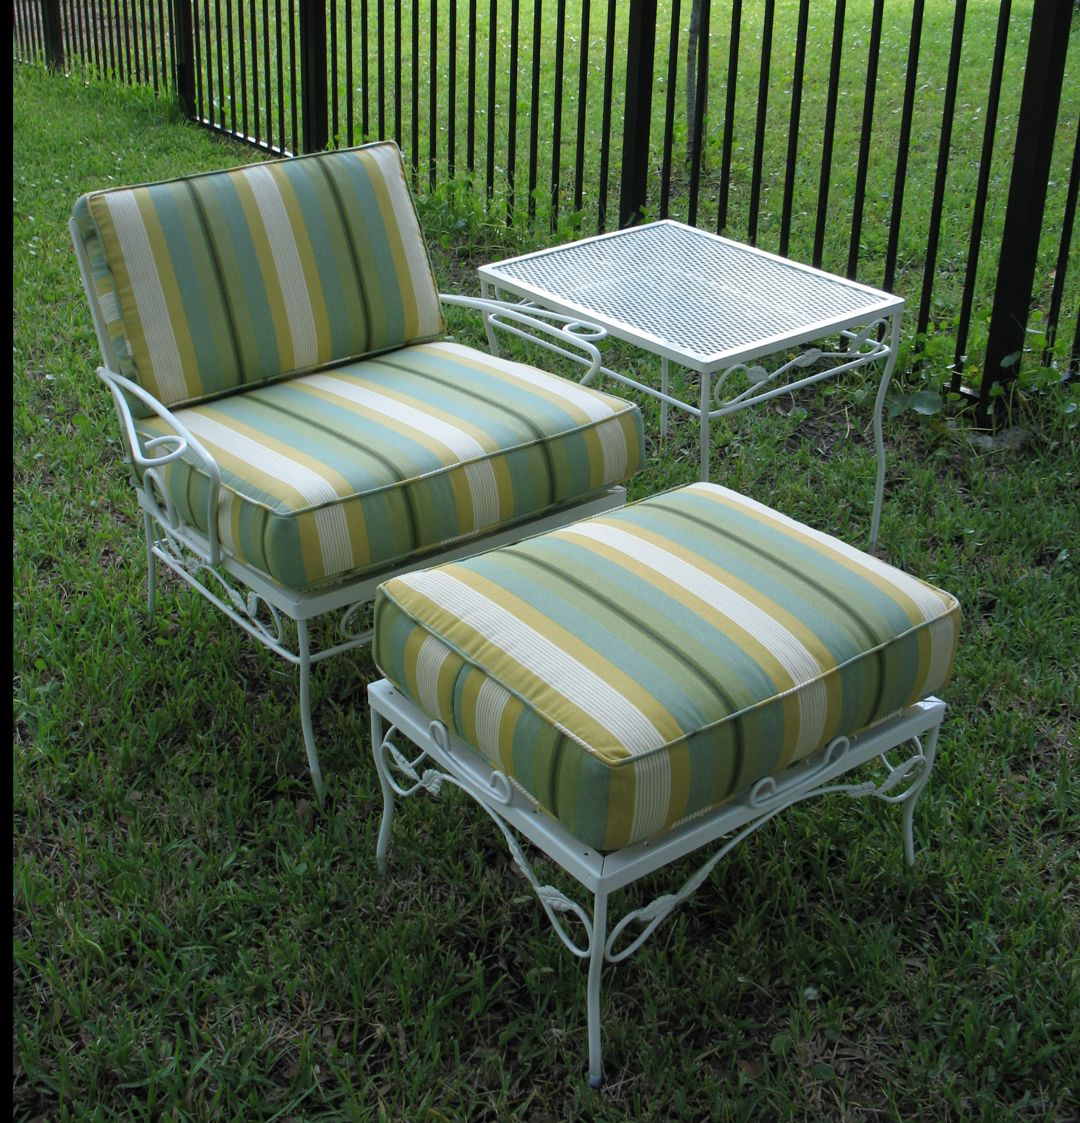 Wrought iron patio chairs vintage - Exterior Adorable Metal Patio Chairs Retro Decoration With Stunning White Iron Material And Comfortable Green Beige Plus Black Striped Thick Padded Seat